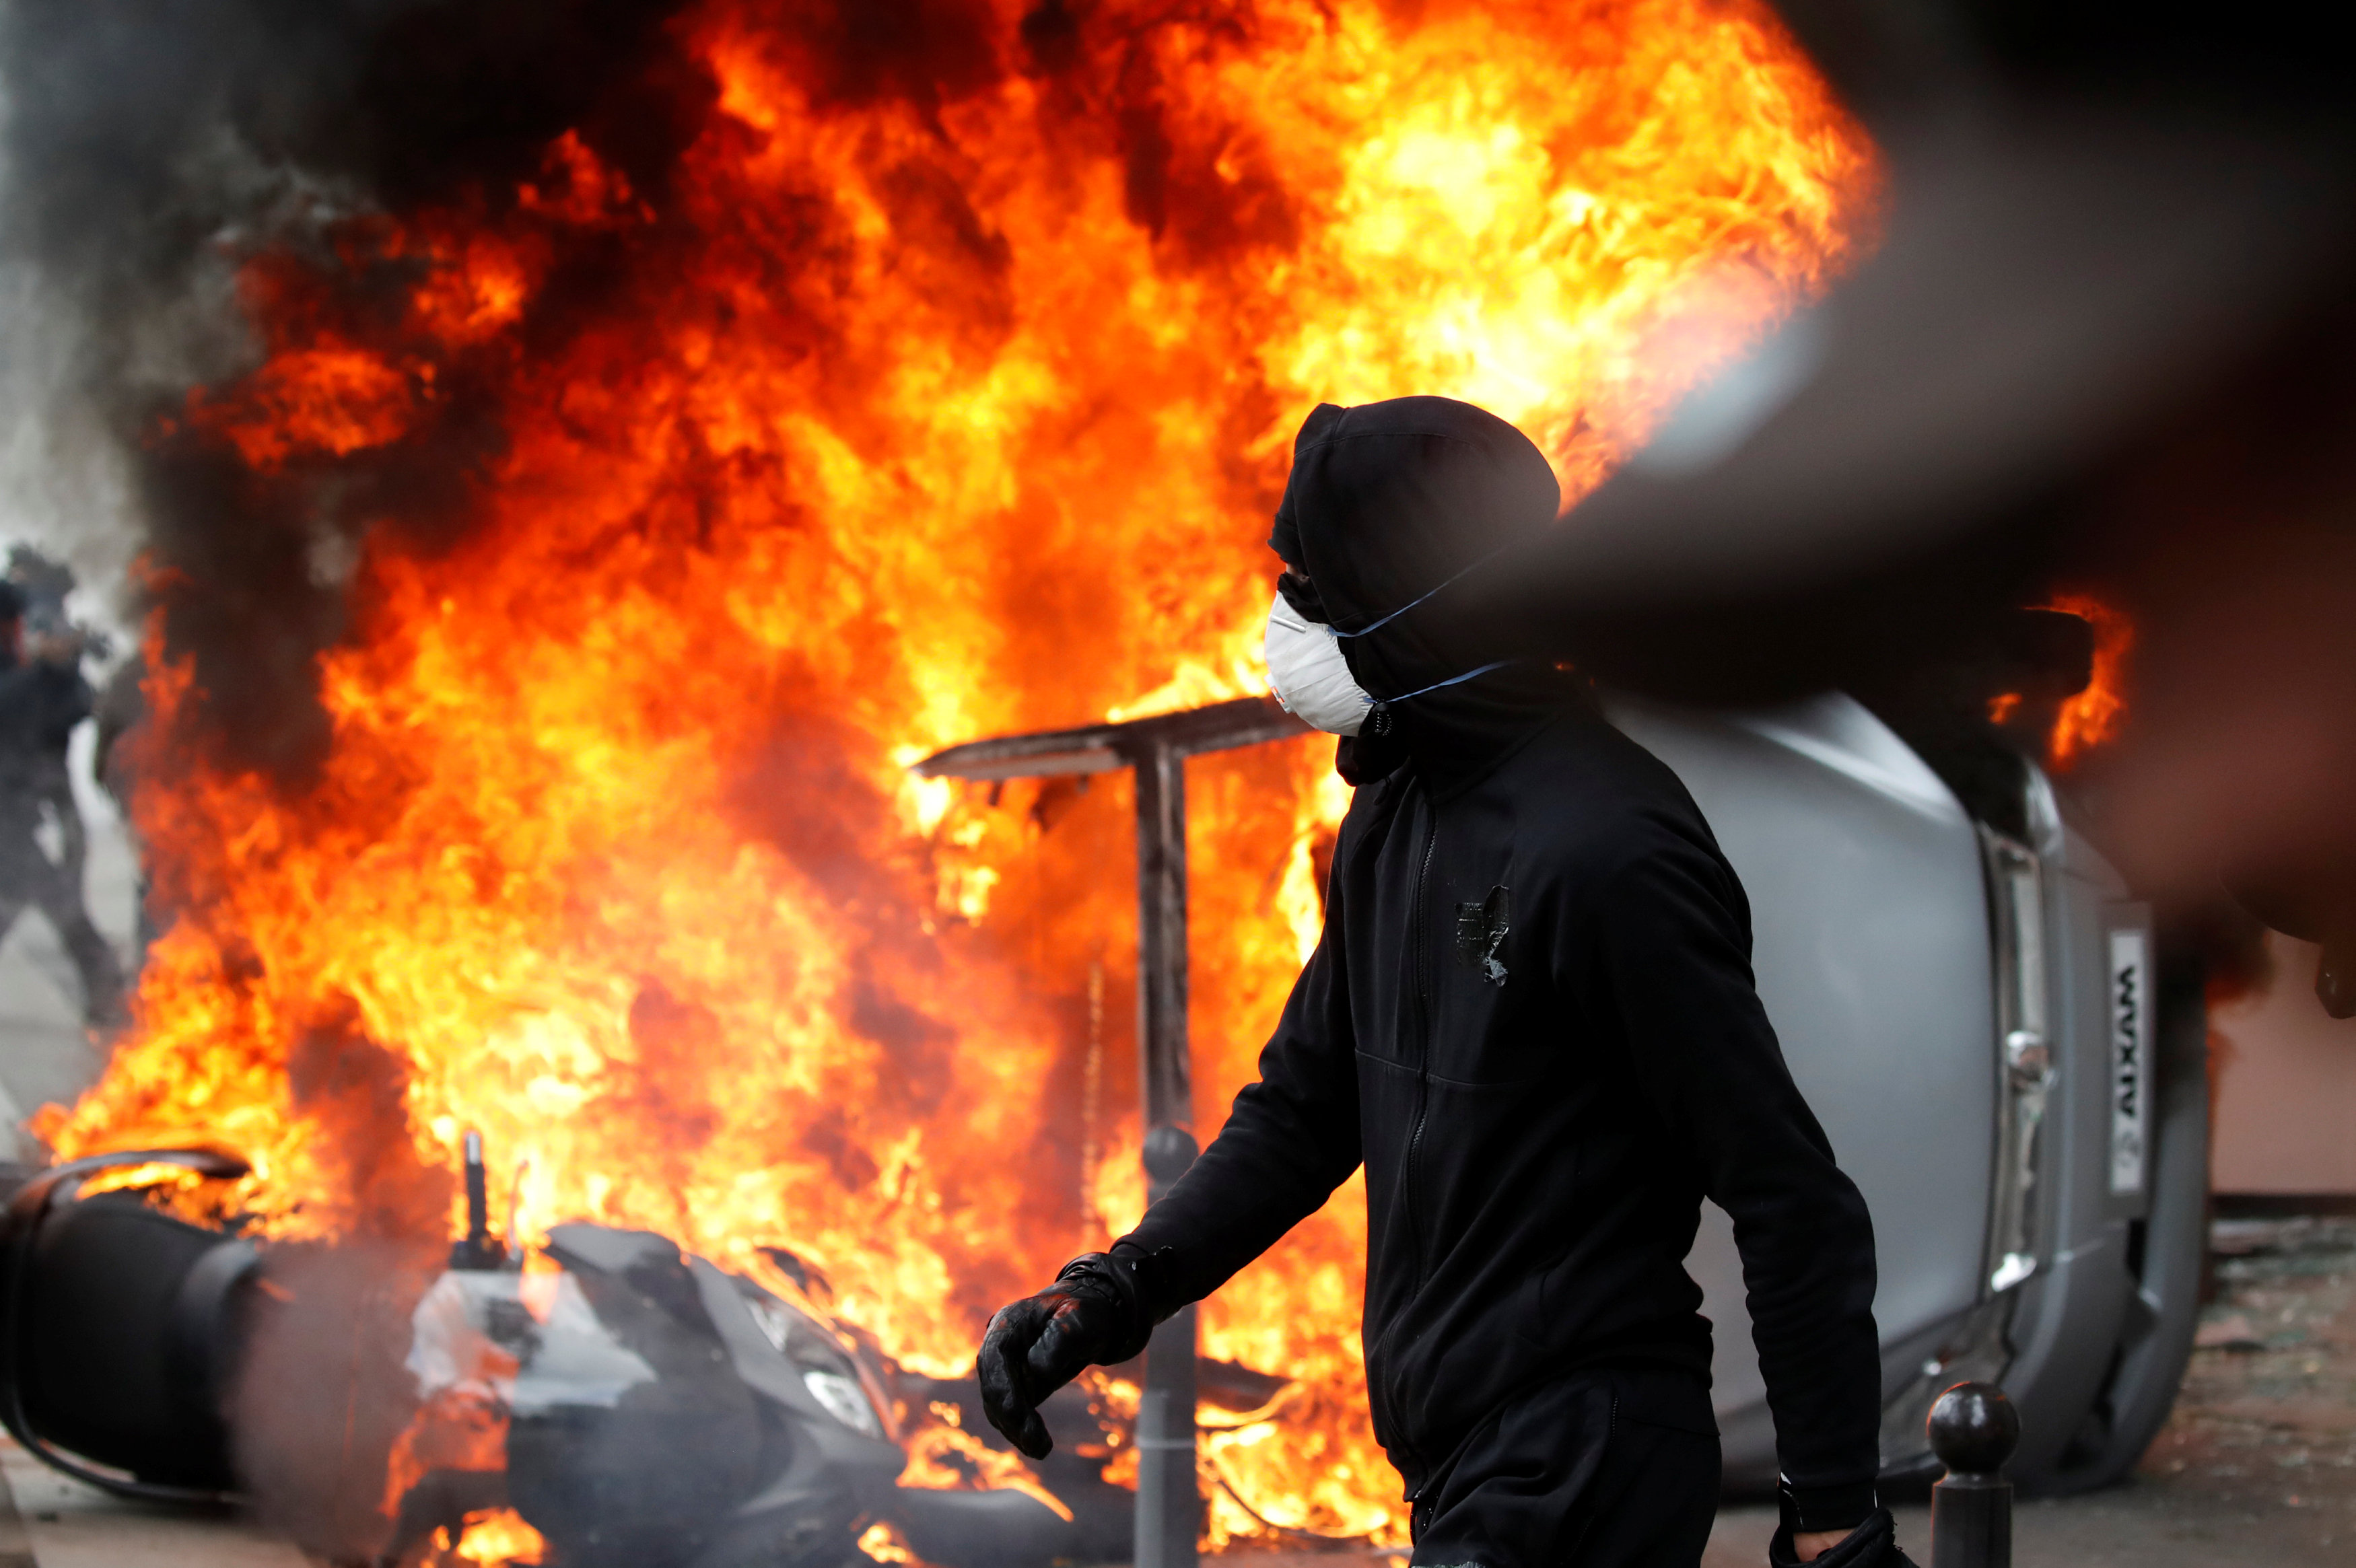 A masked protester walks near a car that burns outside a Renault automobile garage during clashes during the May Day labour union march in Paris, France, May 1, 2018. REUTERS/Christian Hartmann